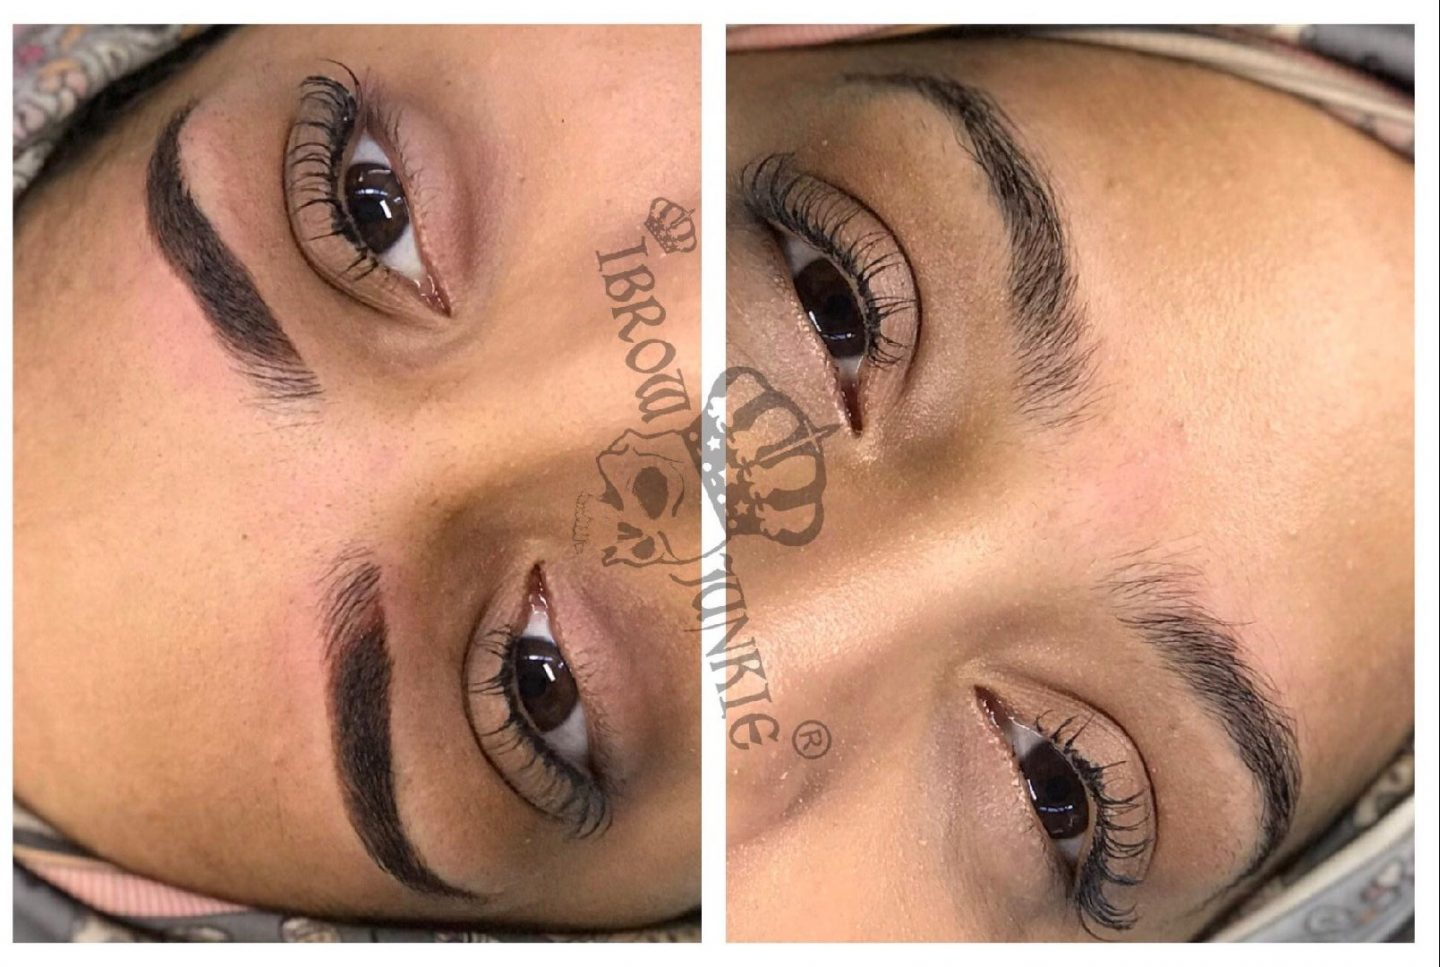 Semi-permanent Eyebrows Tyneside Ibrow junkie